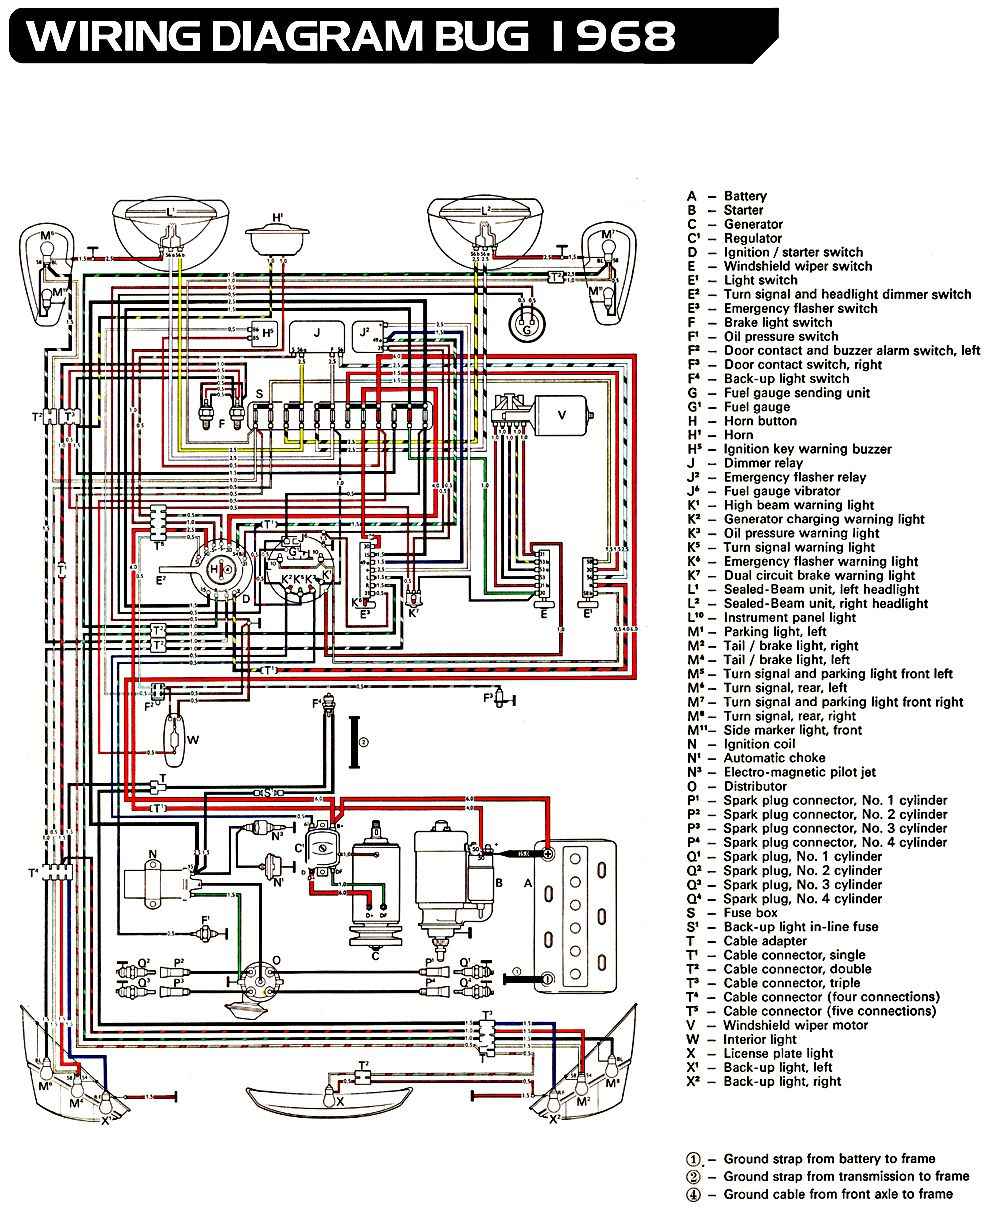 Peachy Vw Bug Wiring Kit Wiring Diagram Data Geral Blikvitt Wiring Digital Resources Geralblikvittorg